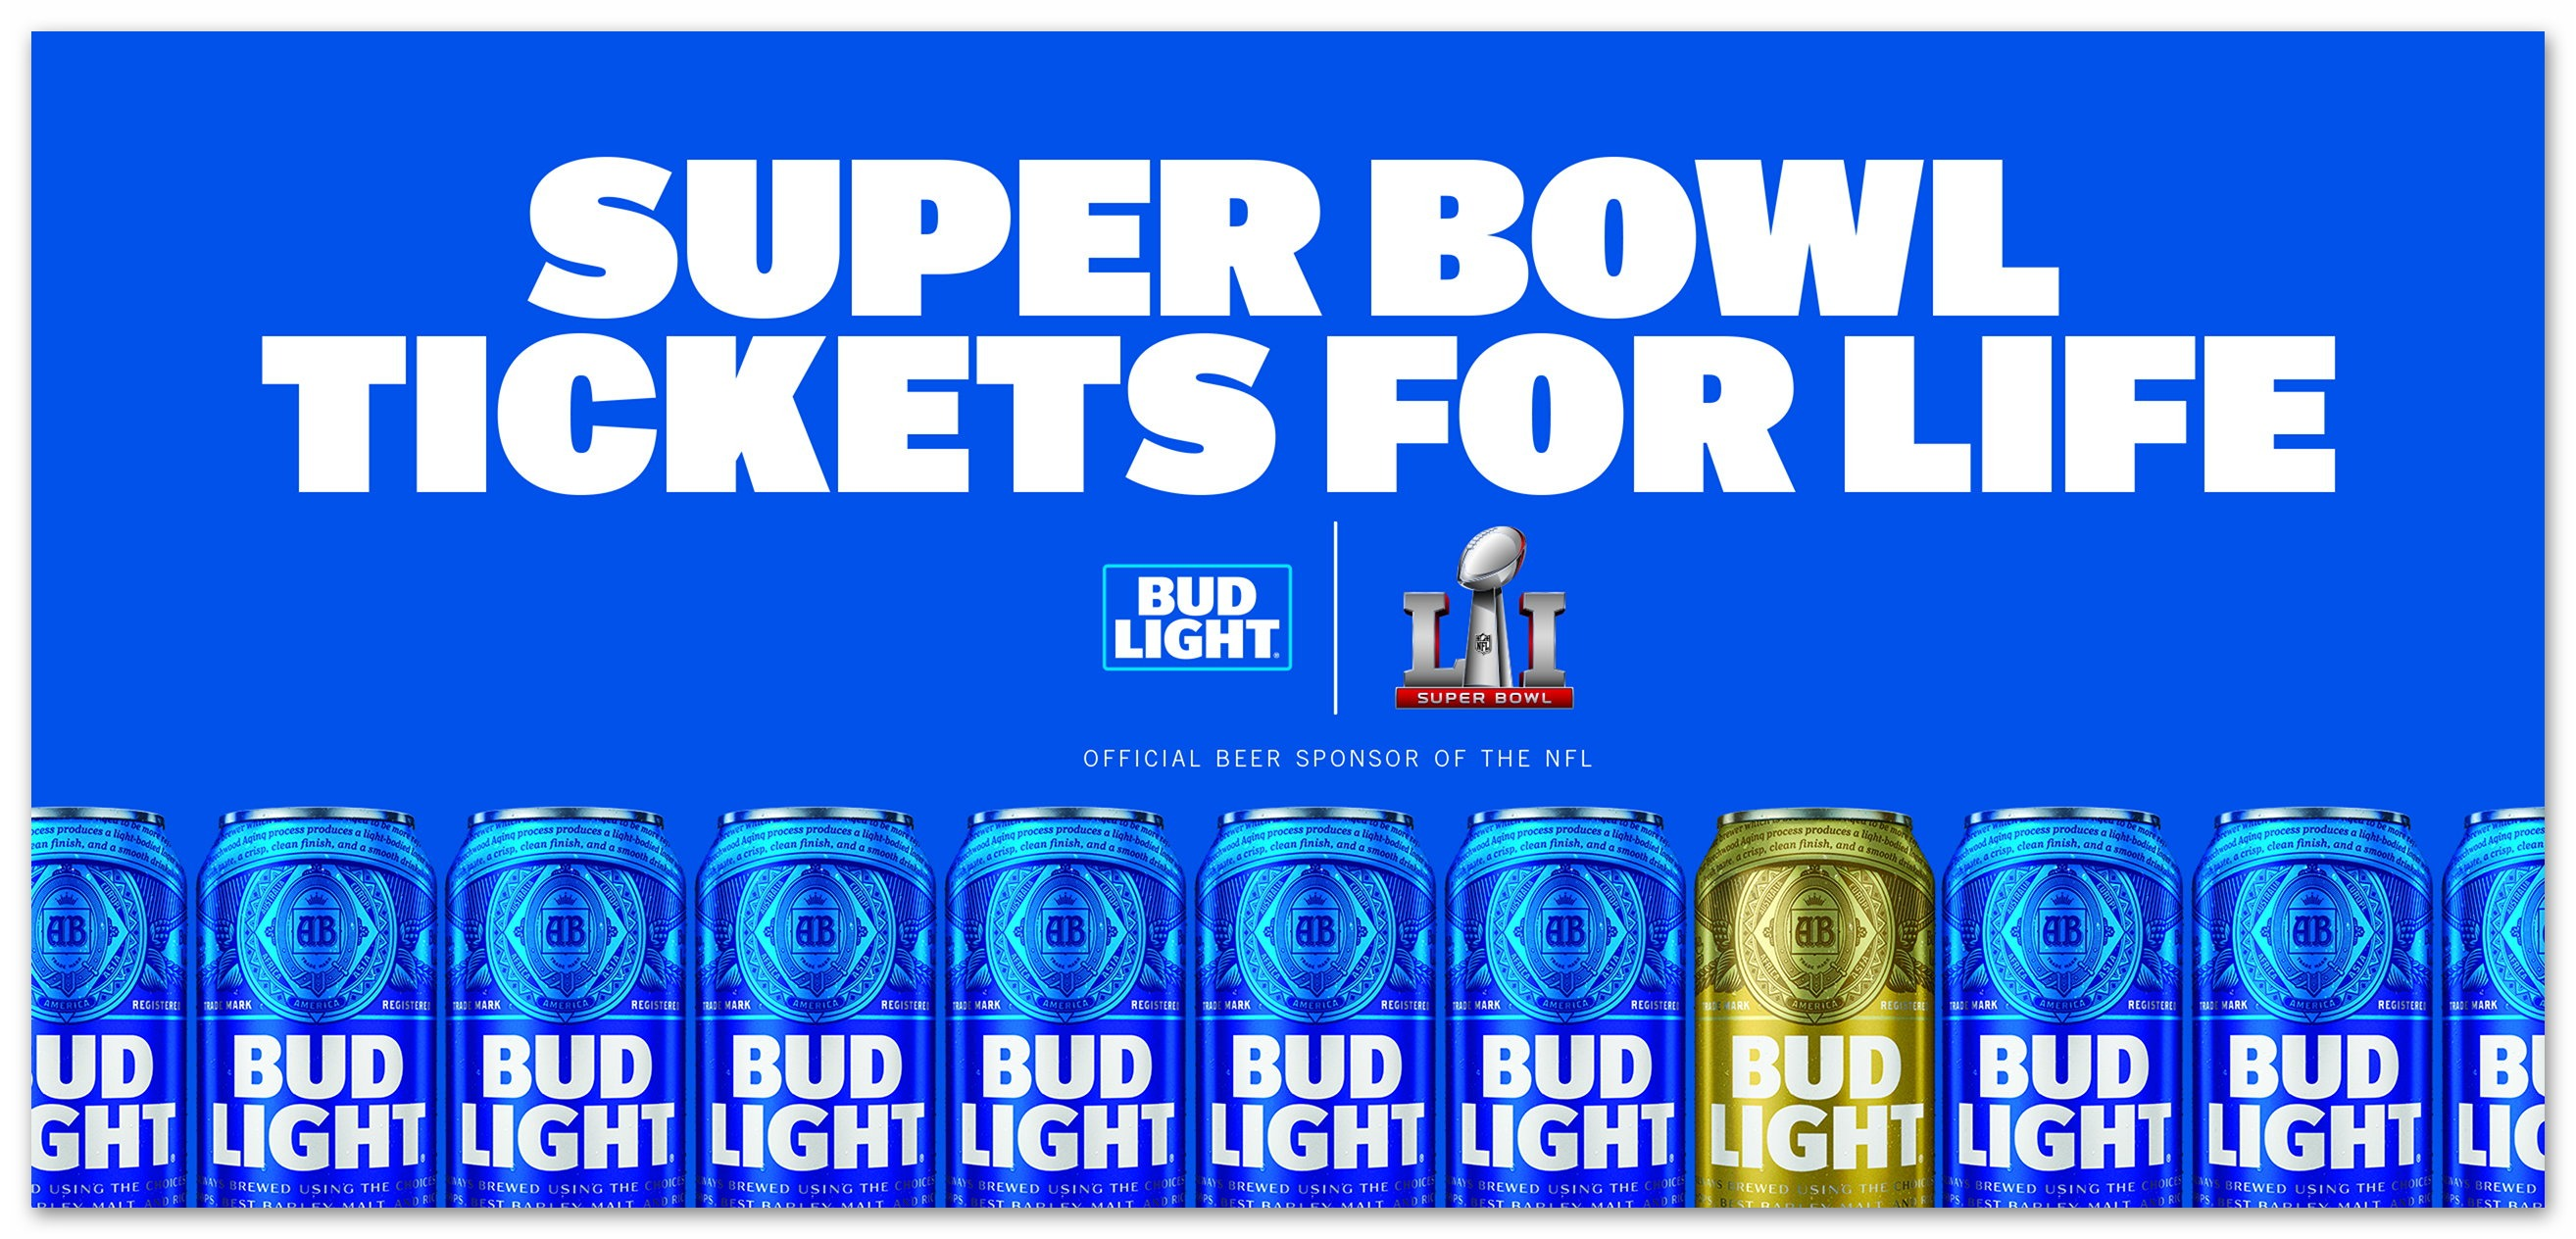 Bud Light Super Bowl Tickets For Life Sweepstakes